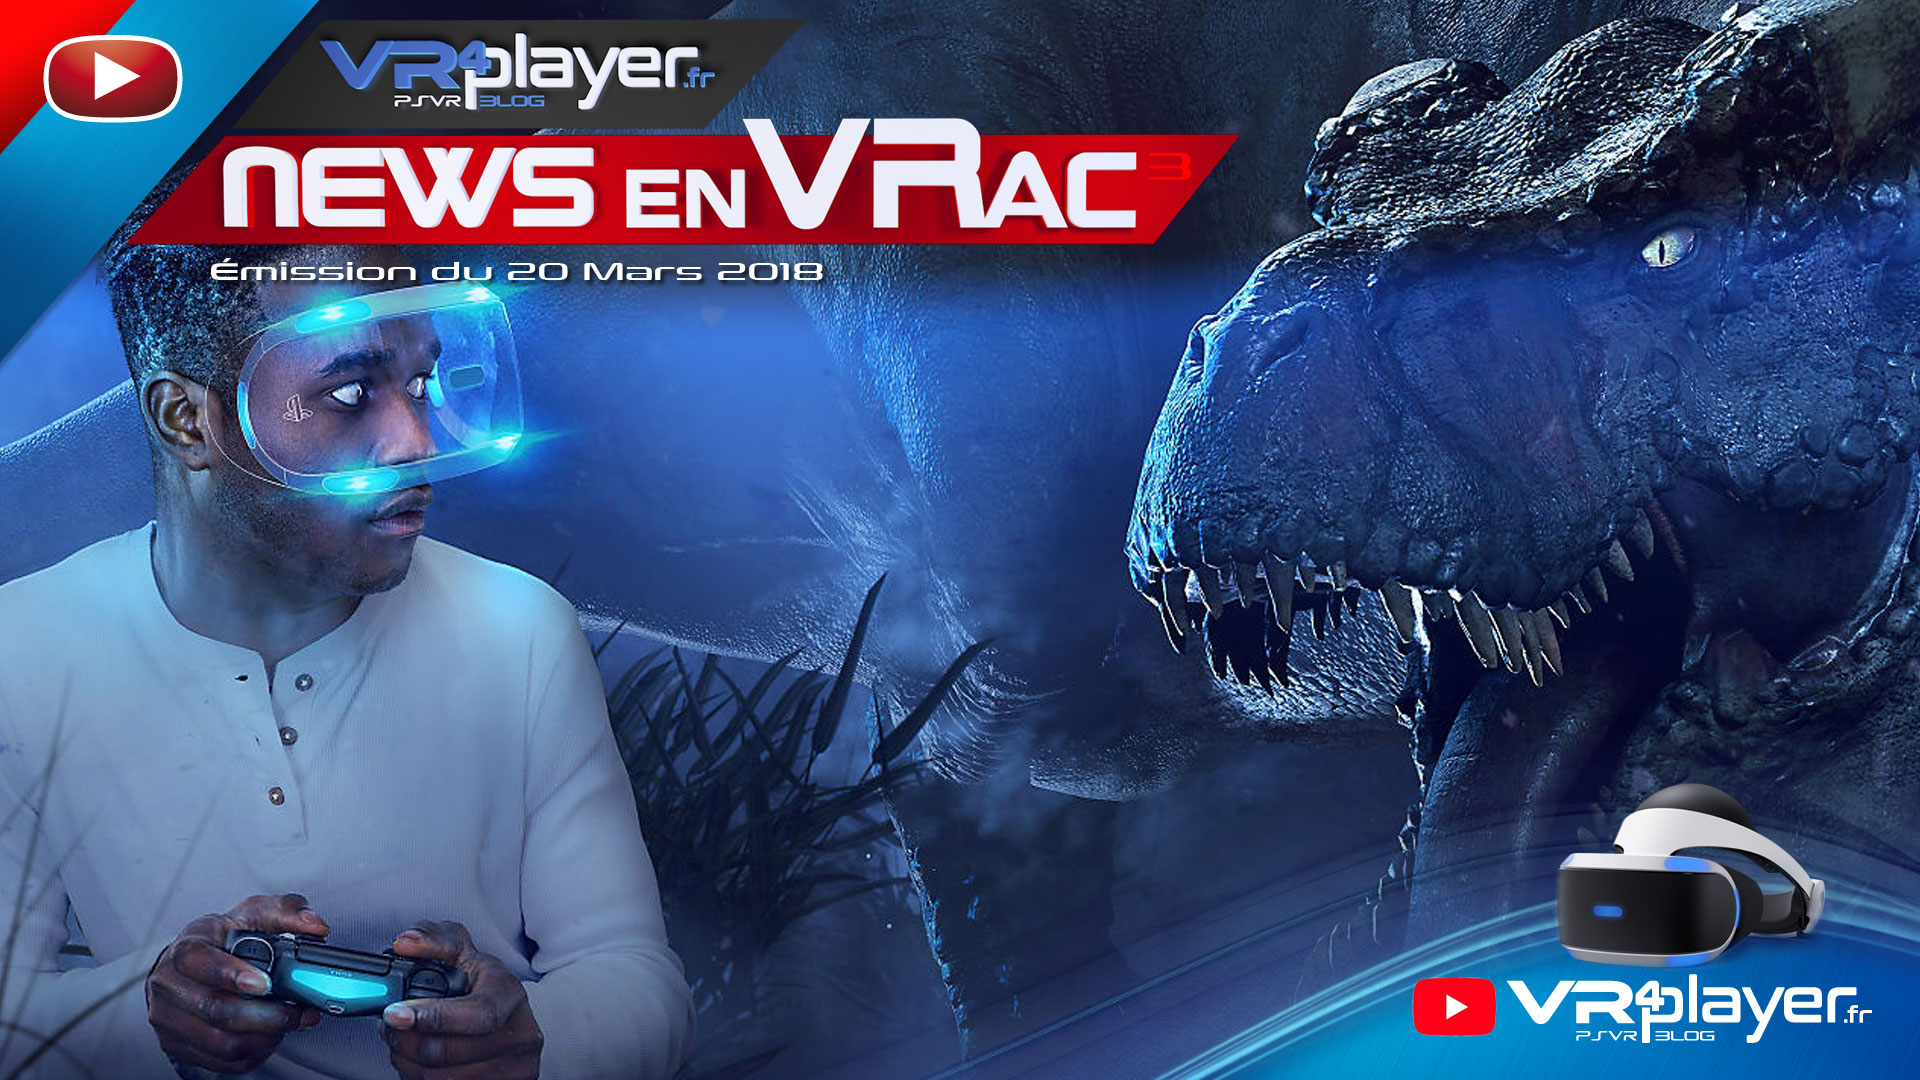 PlayStation VR, Les News en VRac 3 VR4player.fr